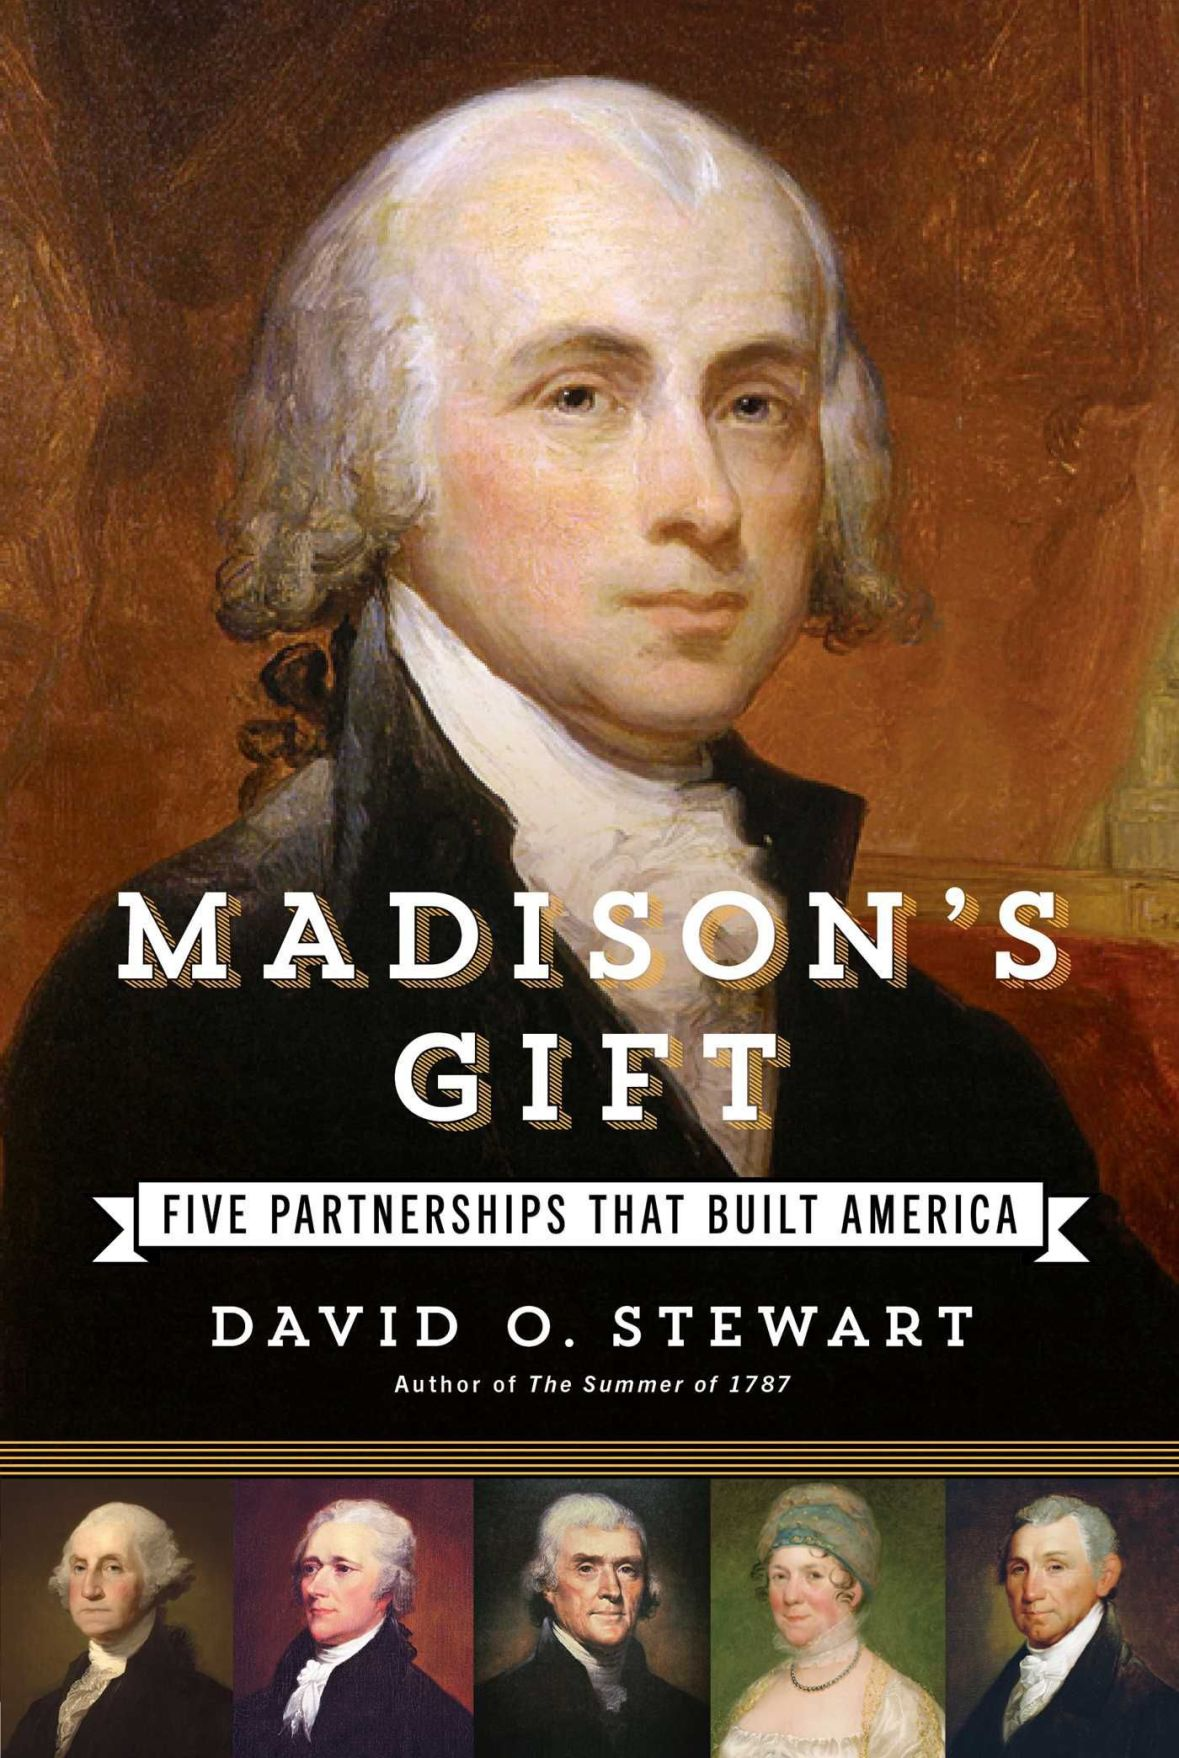 Importance of modest James Madison